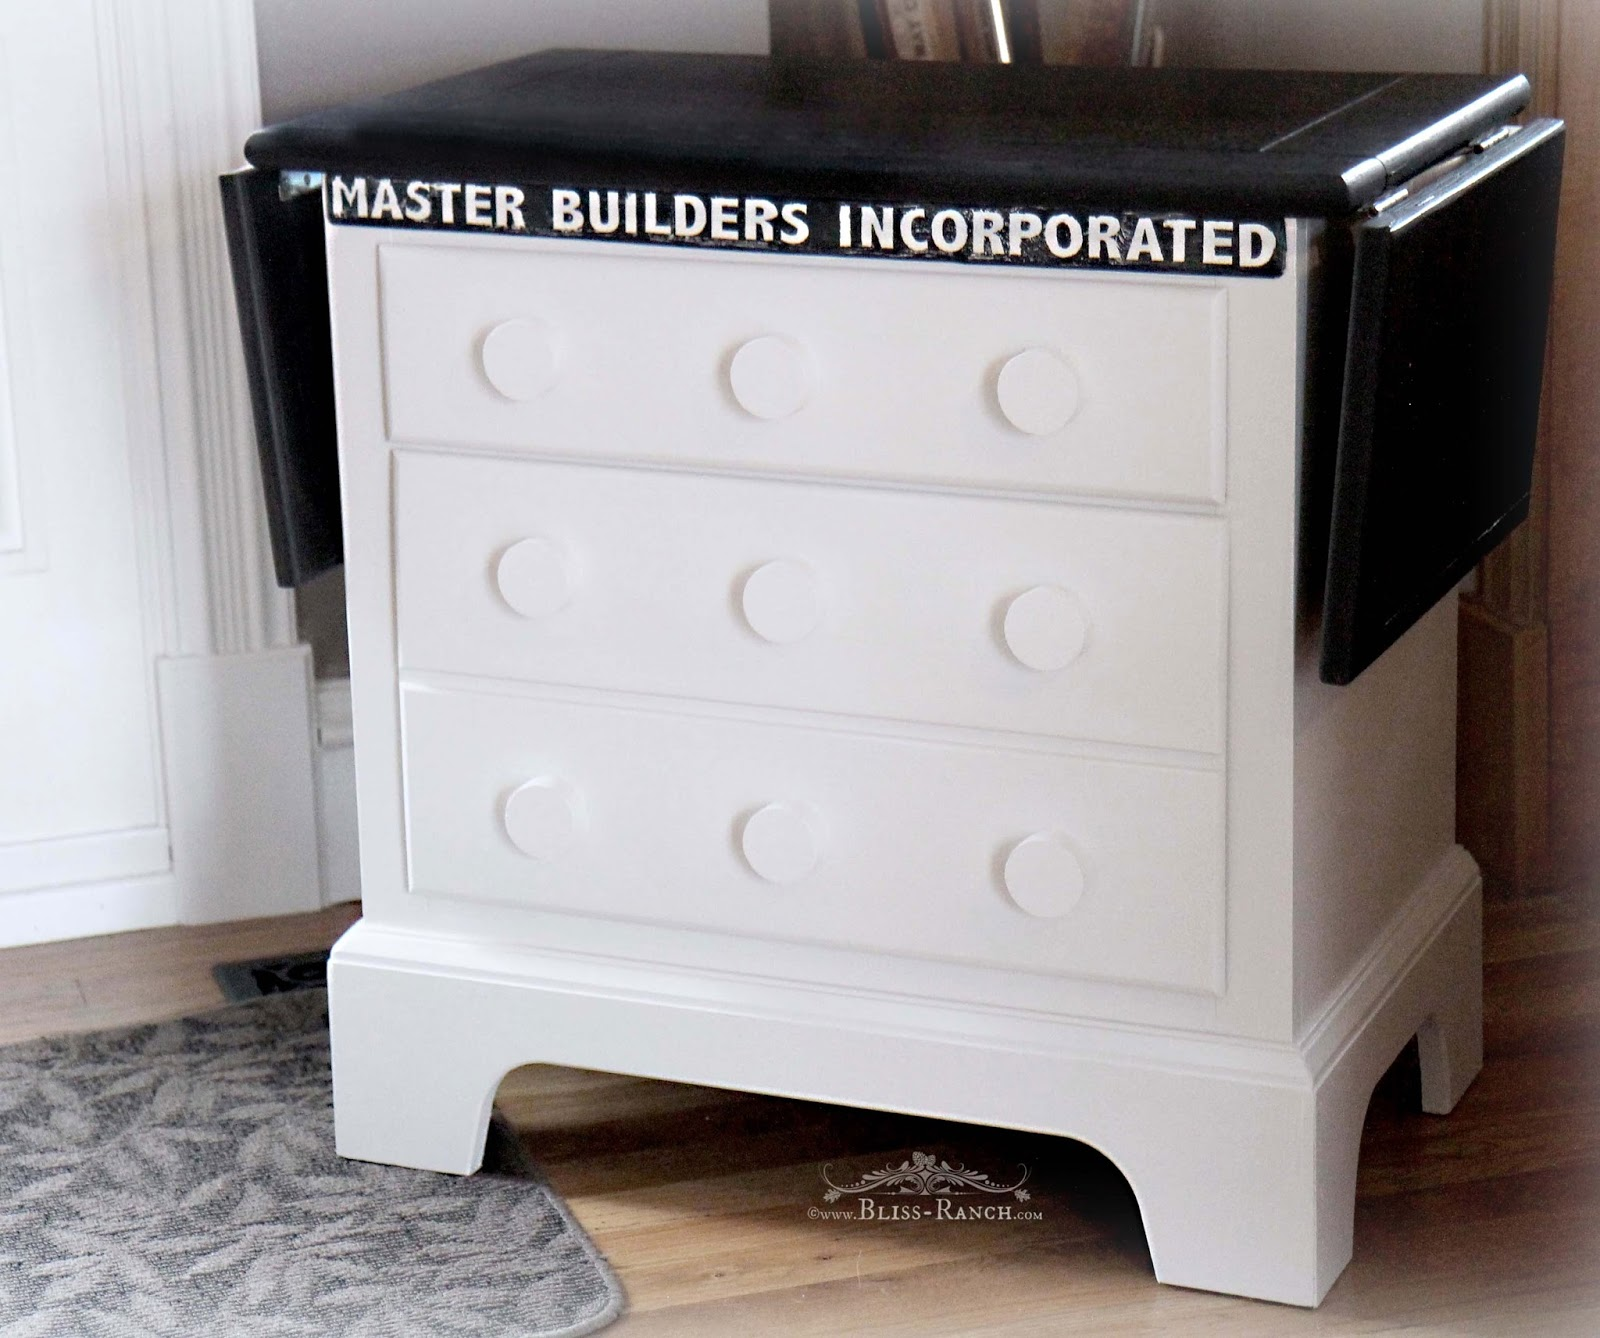 Lego Building Table from nightstand Bliss-Ranch.com